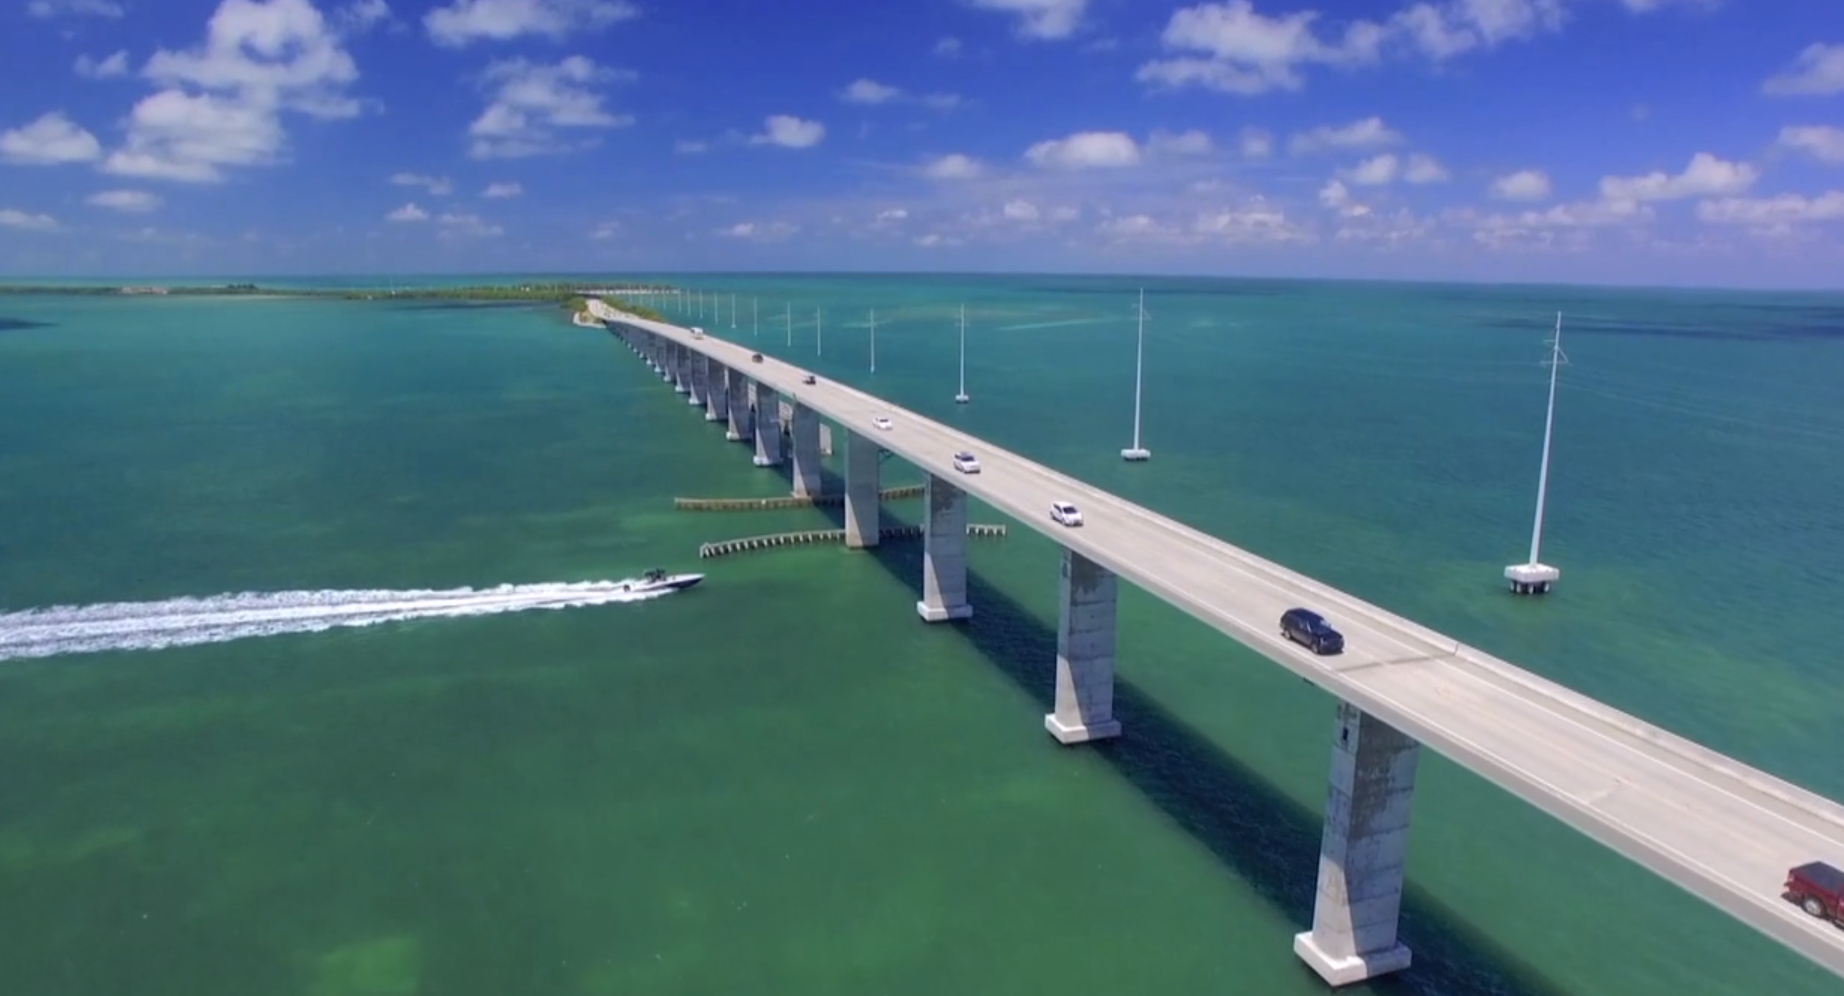 Drone shot from our Florida Keys Episode 210